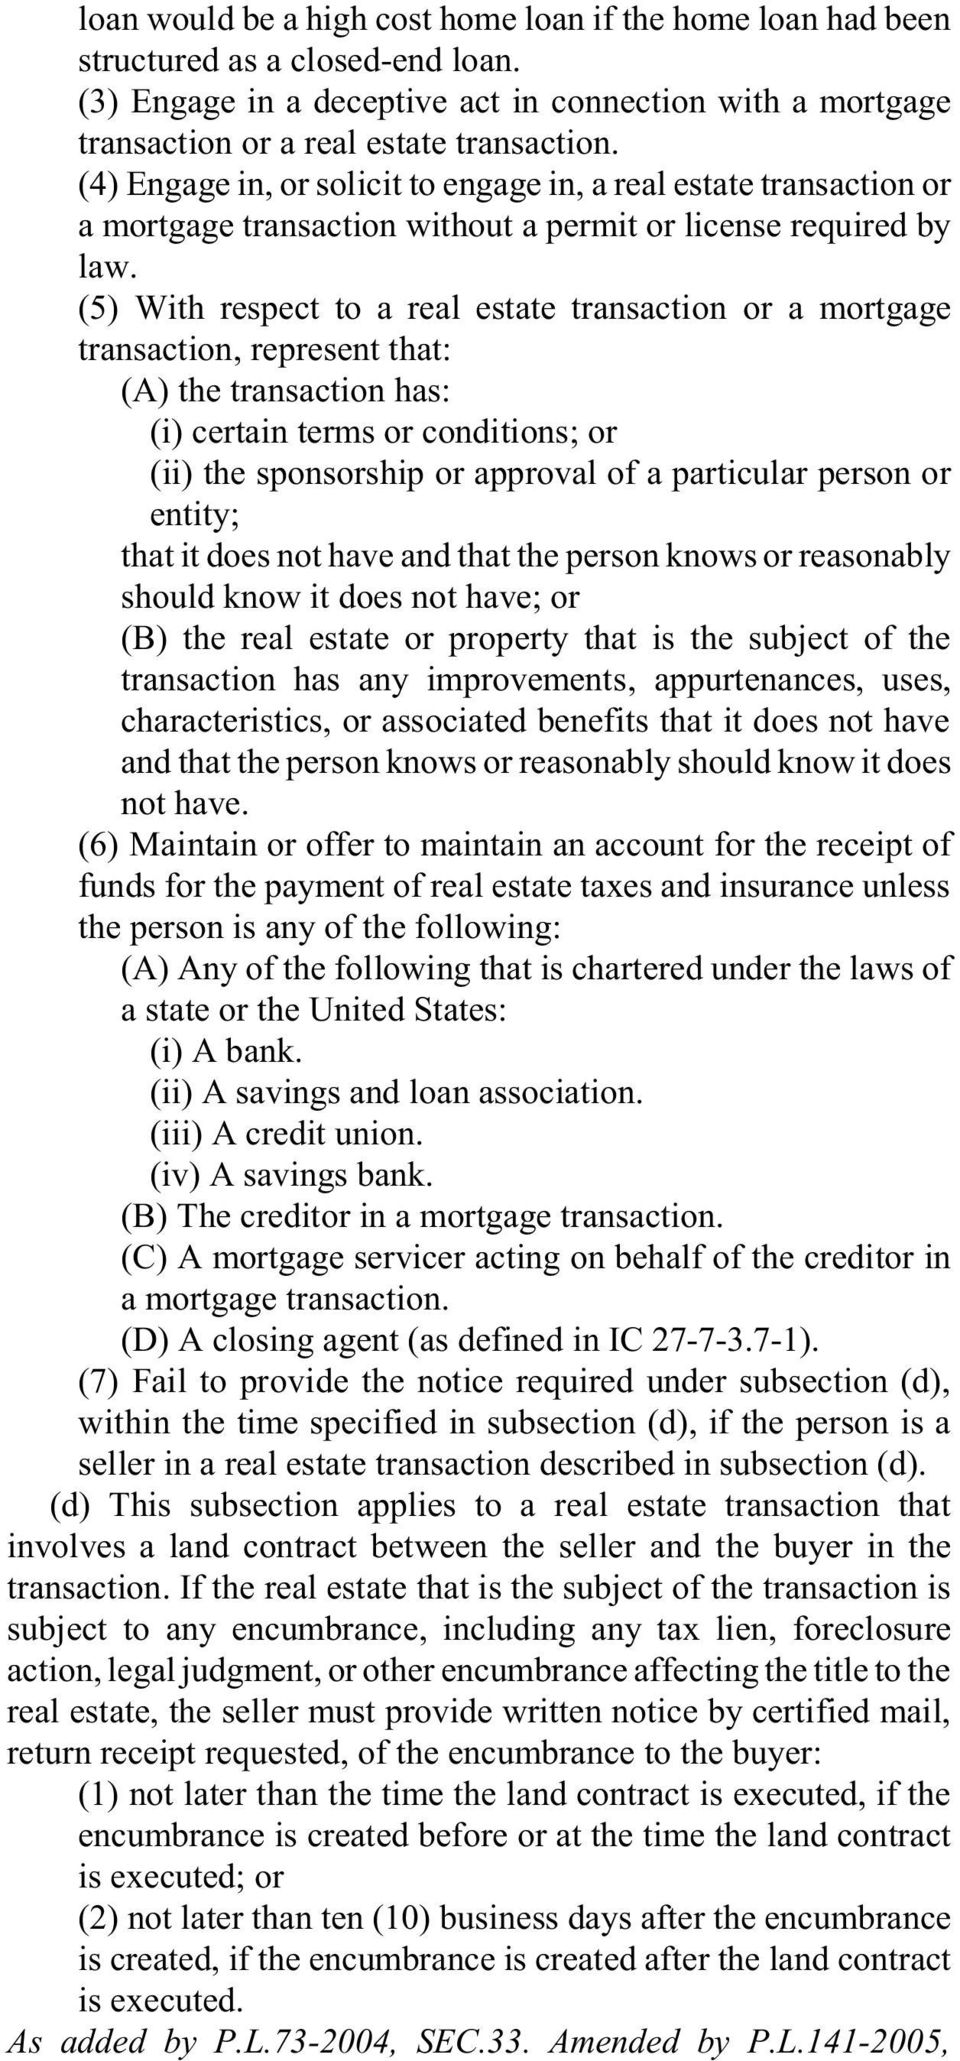 (5) With respect to a real estate transaction or a mortgage transaction, represent that: (A) the transaction has: (i) certain terms or conditions; or (ii) the sponsorship or approval of a particular